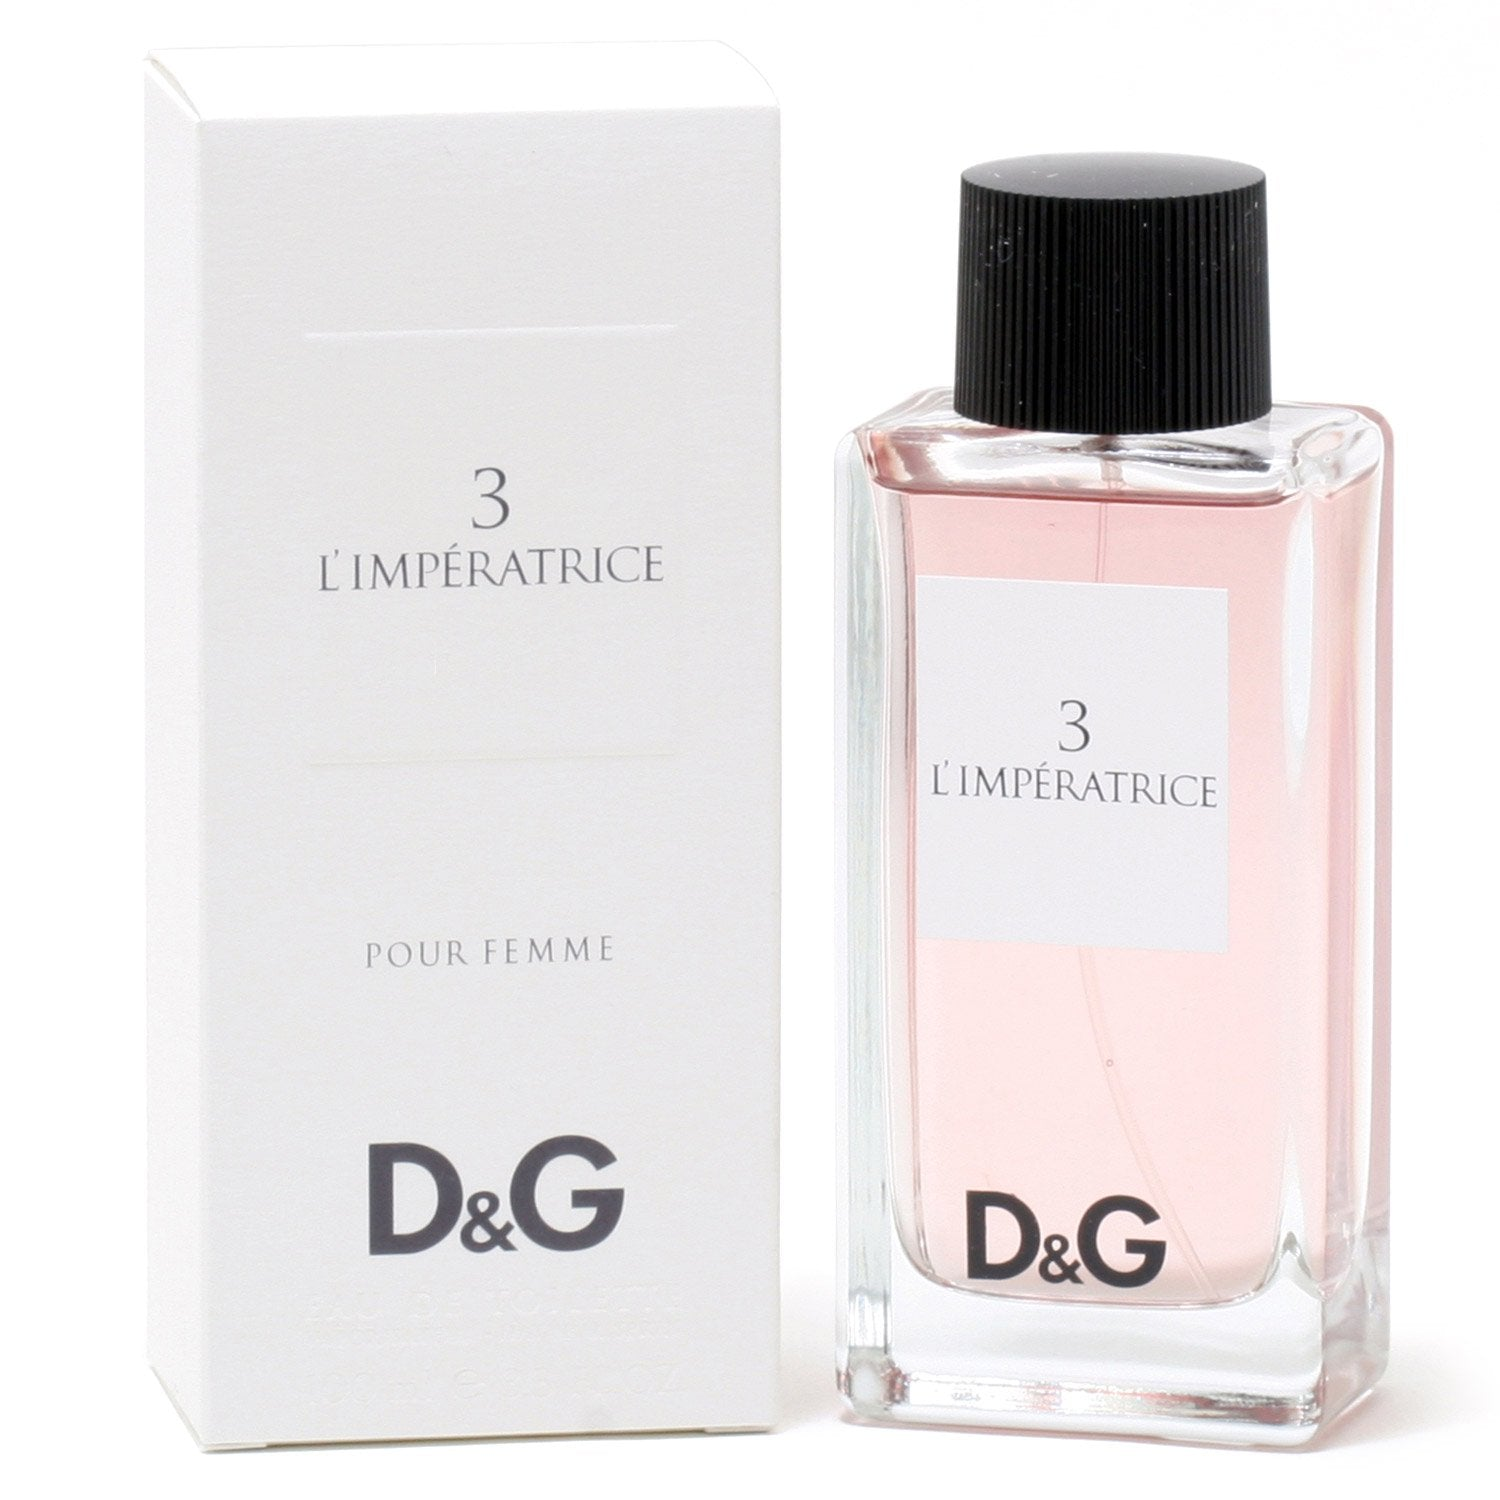 Perfume - DOLCE & GABBANA 3 L'IMPERATRICE FOR WOMEN - EAU DE TOILETTE SPRAY, 3.3 OZ